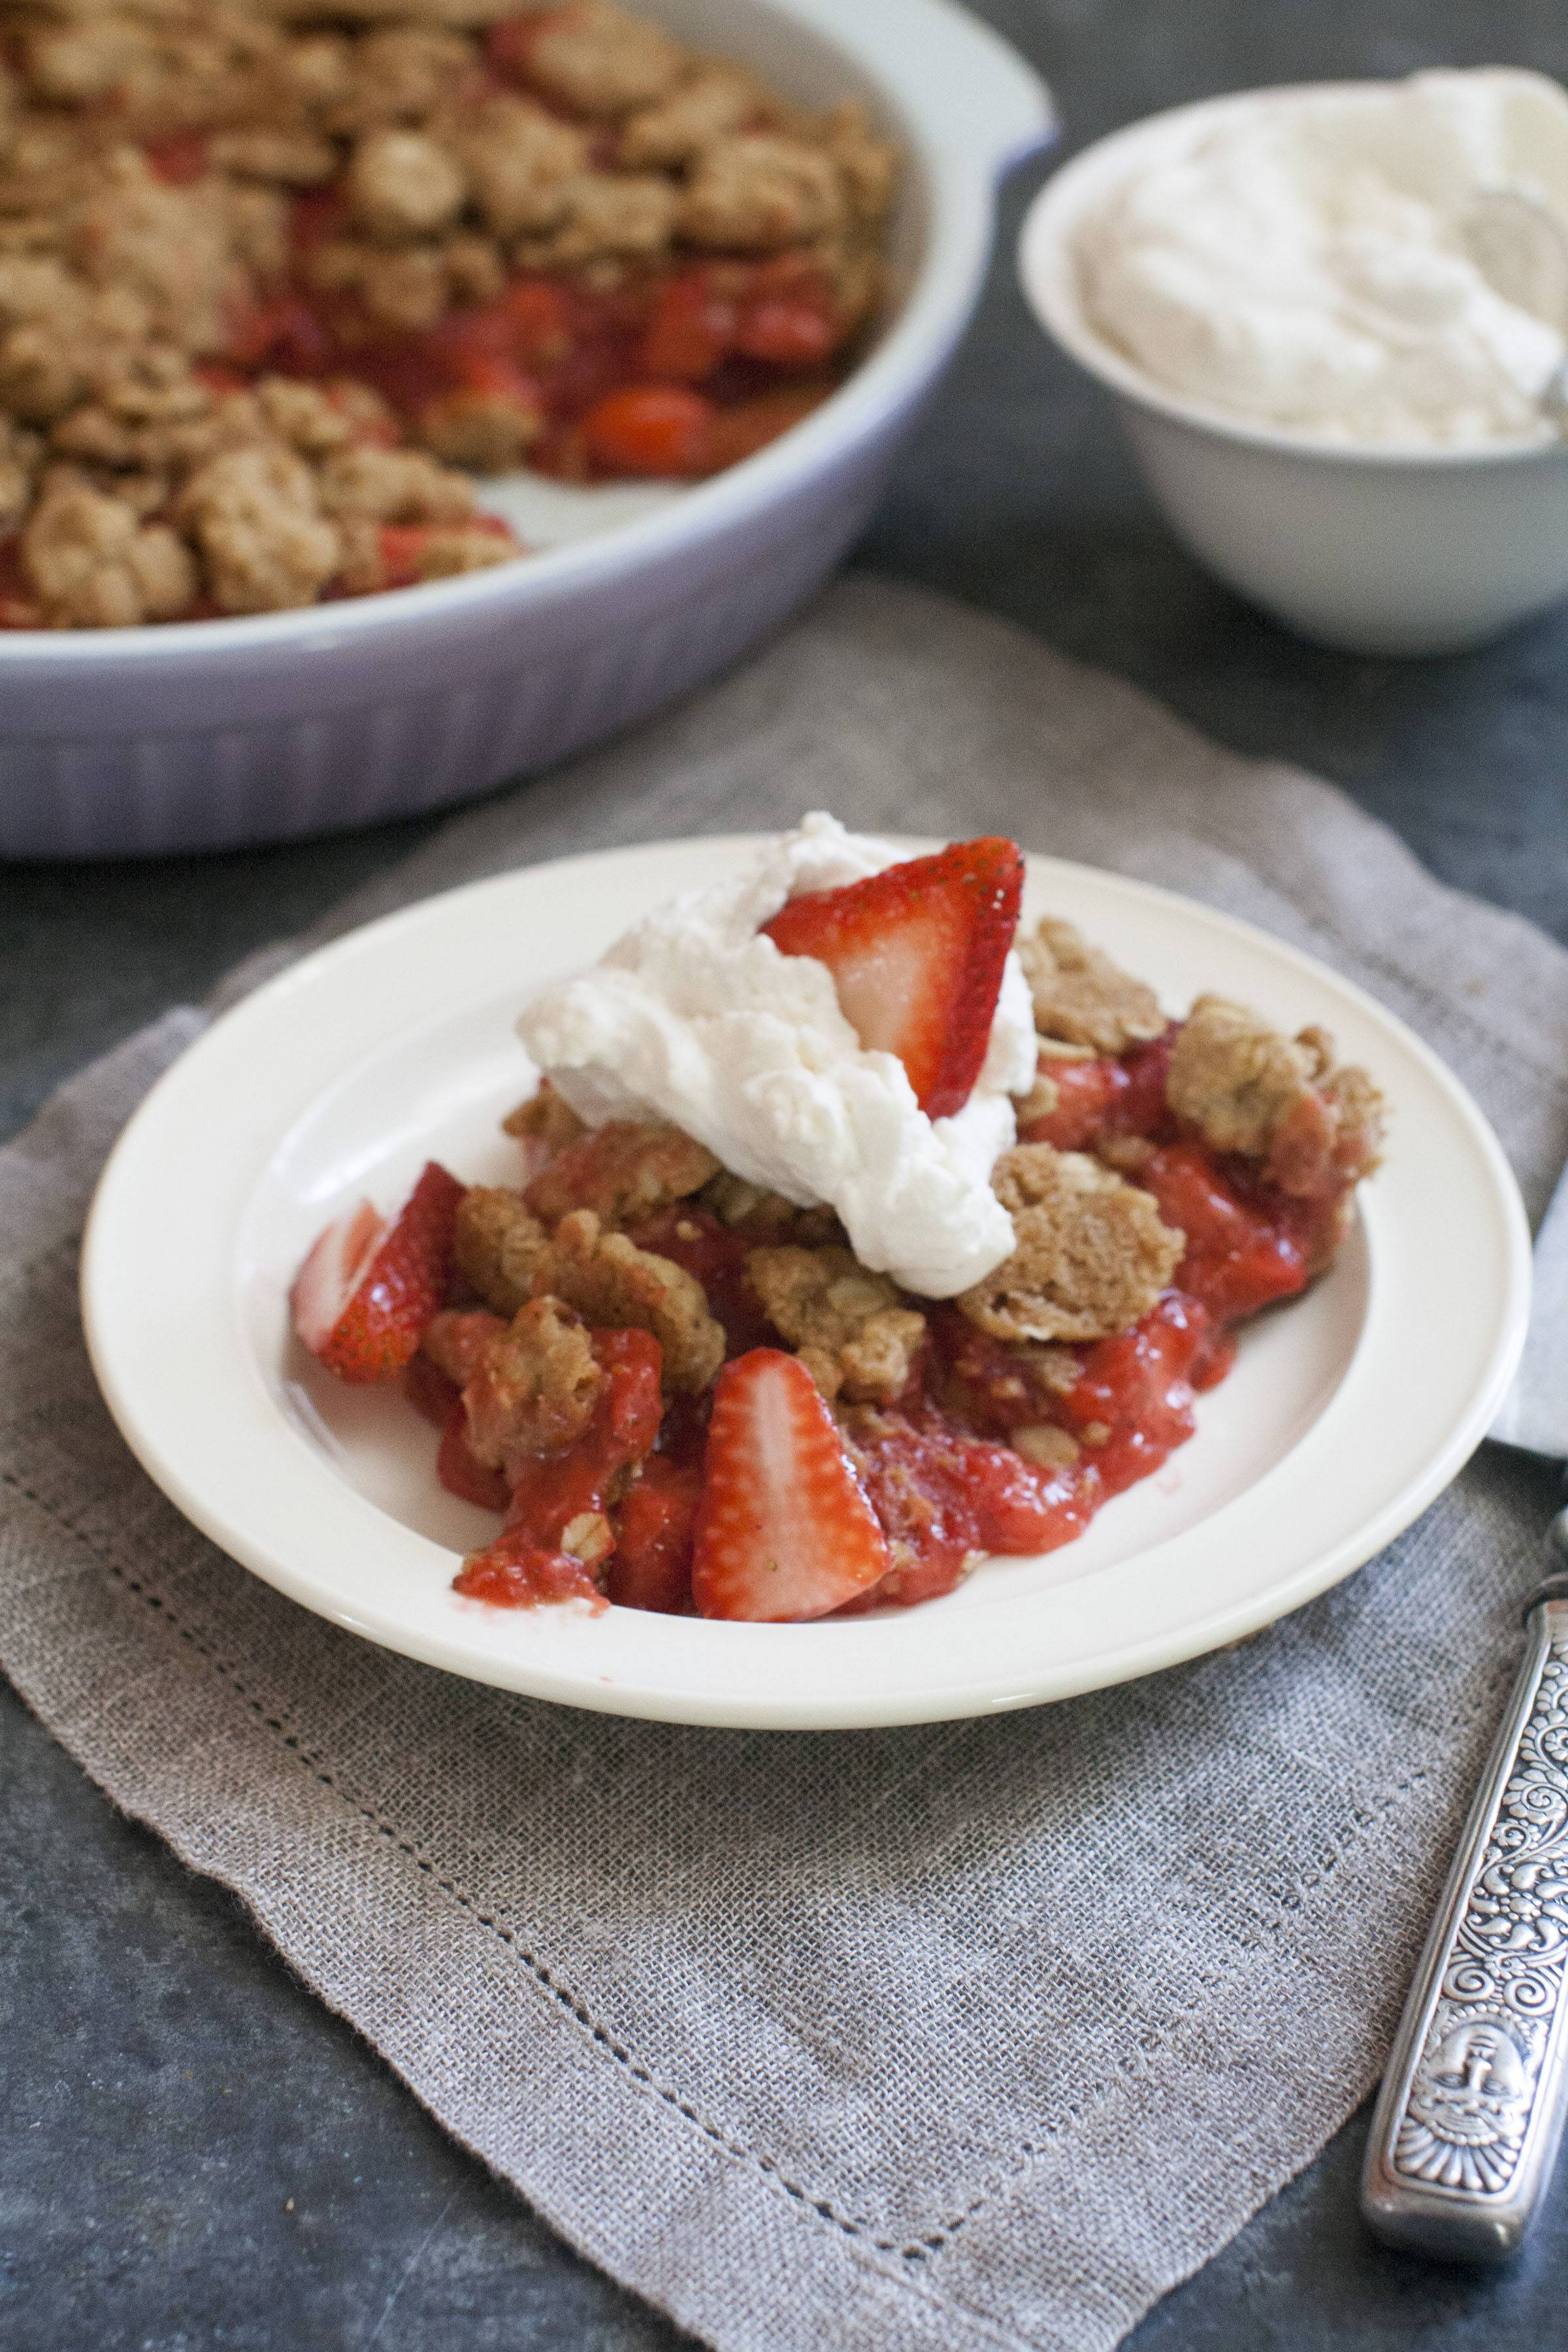 Strawberry Pistachio Torte is a deliciously easy was to showcase the season's brightest berries.